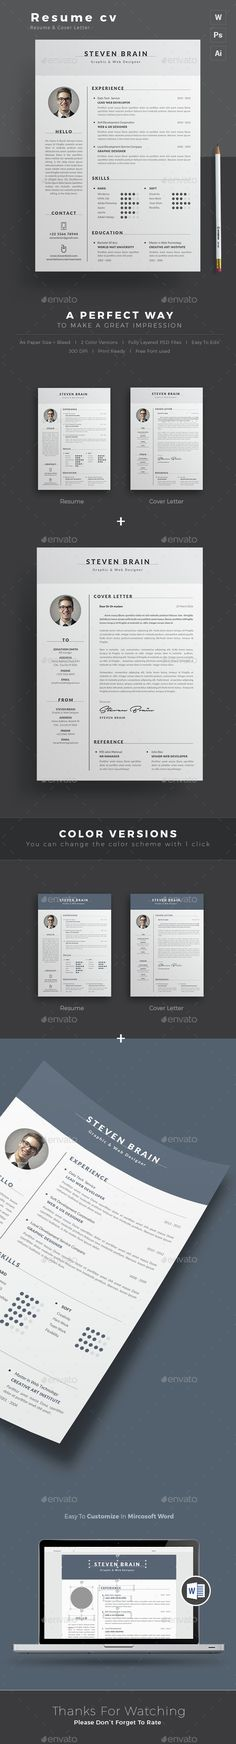 #Resume - Resumes #Stationery Download here: https://graphicriver.net/item/resume/15438388?ref=alena994